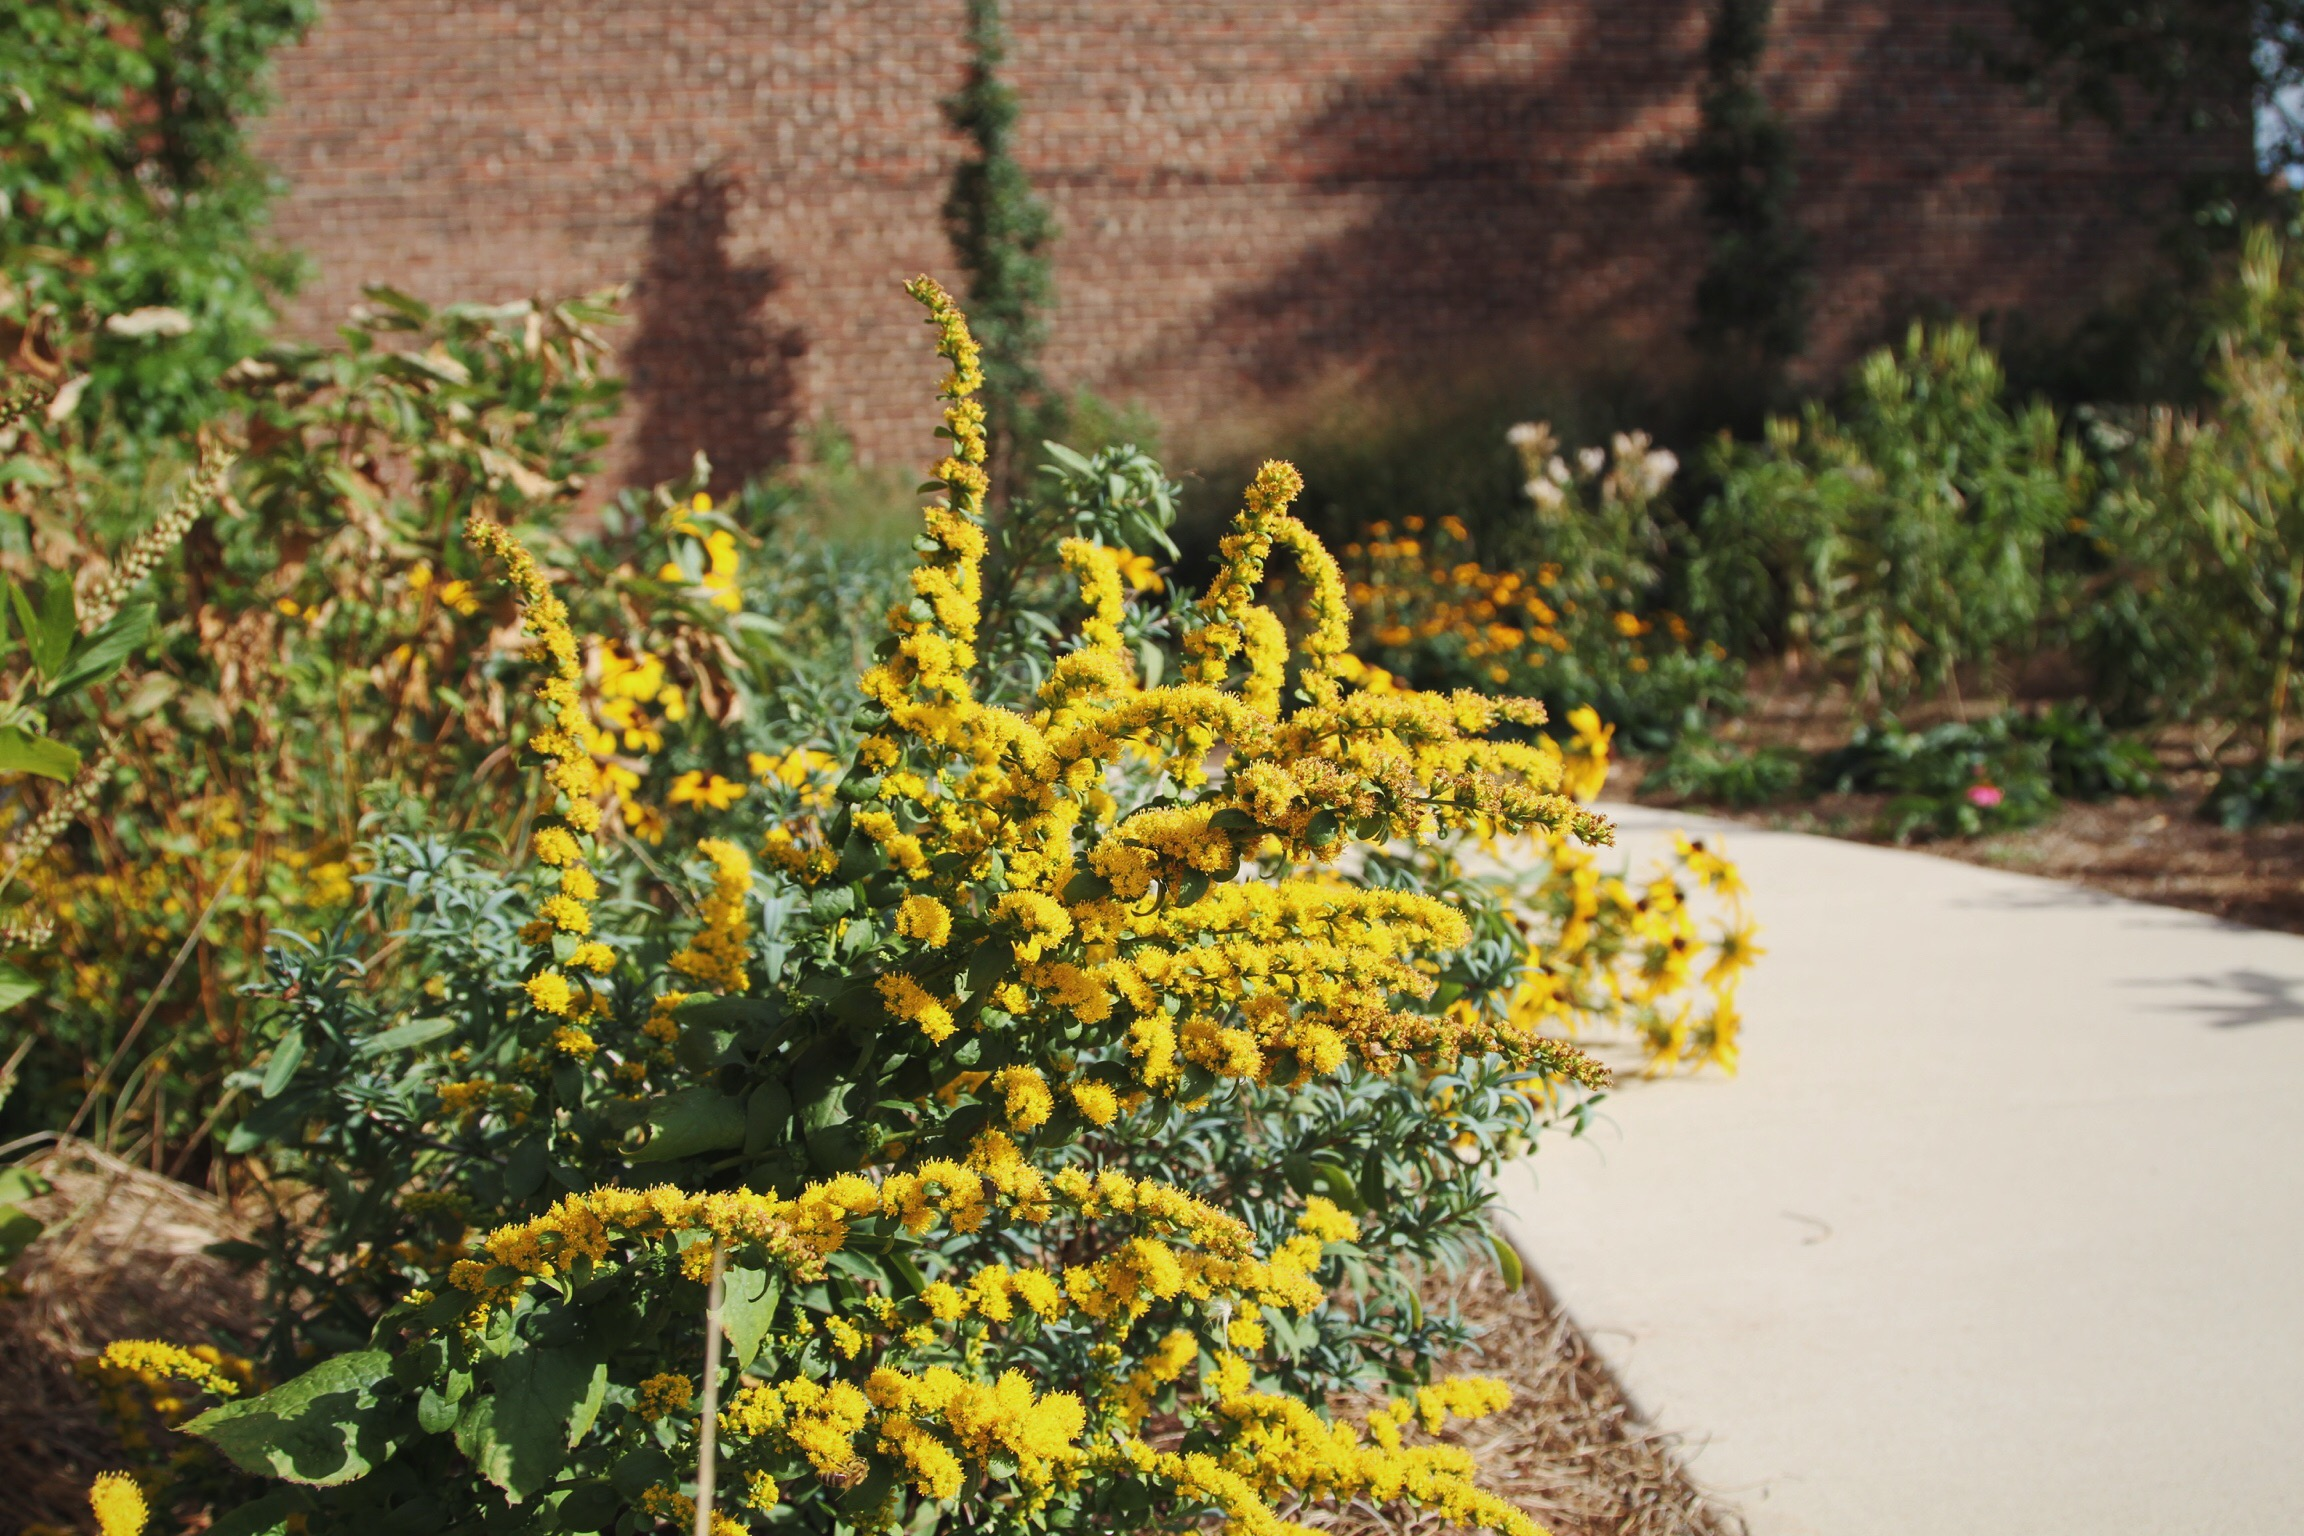 Goldenrod, or  Solidago sphacelata 'Golden Fleece,'  blooms beautifully in August-September, and works best in an environment where its growth rate is moderated by the presence of functional pests and competition from other native plant species.